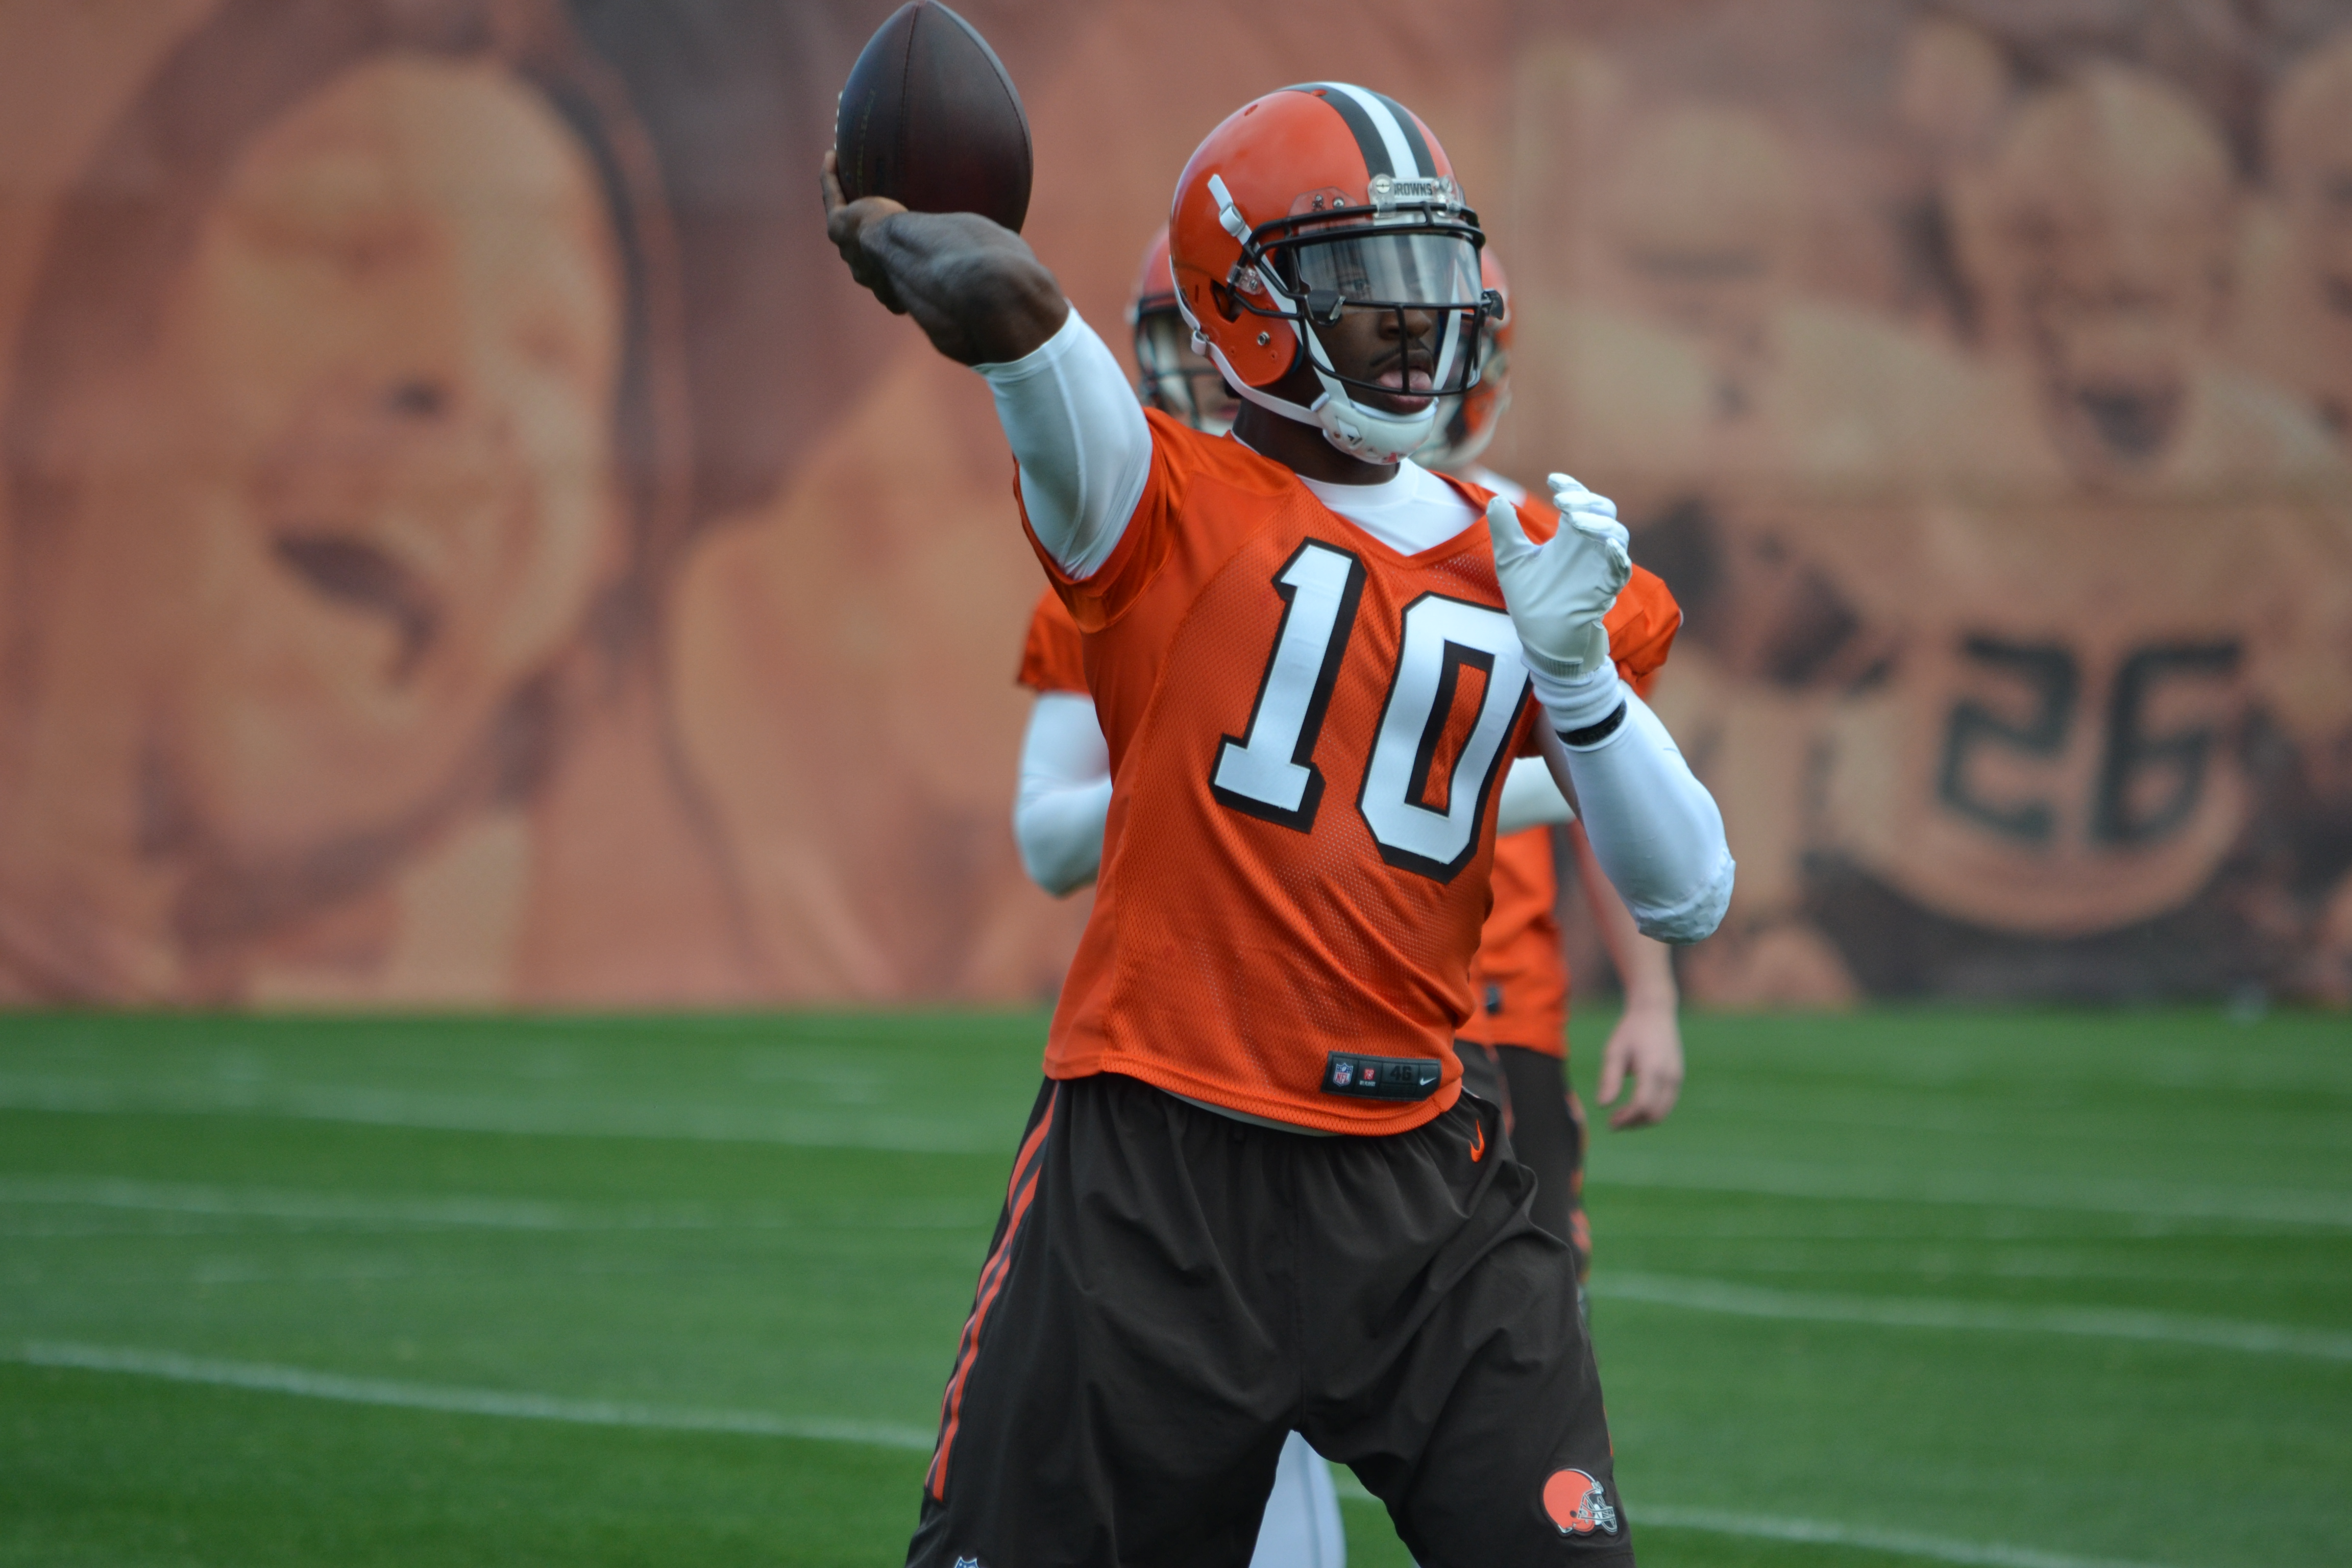 Cleveland Browns see down-to-earth RGIII   wkyc.com